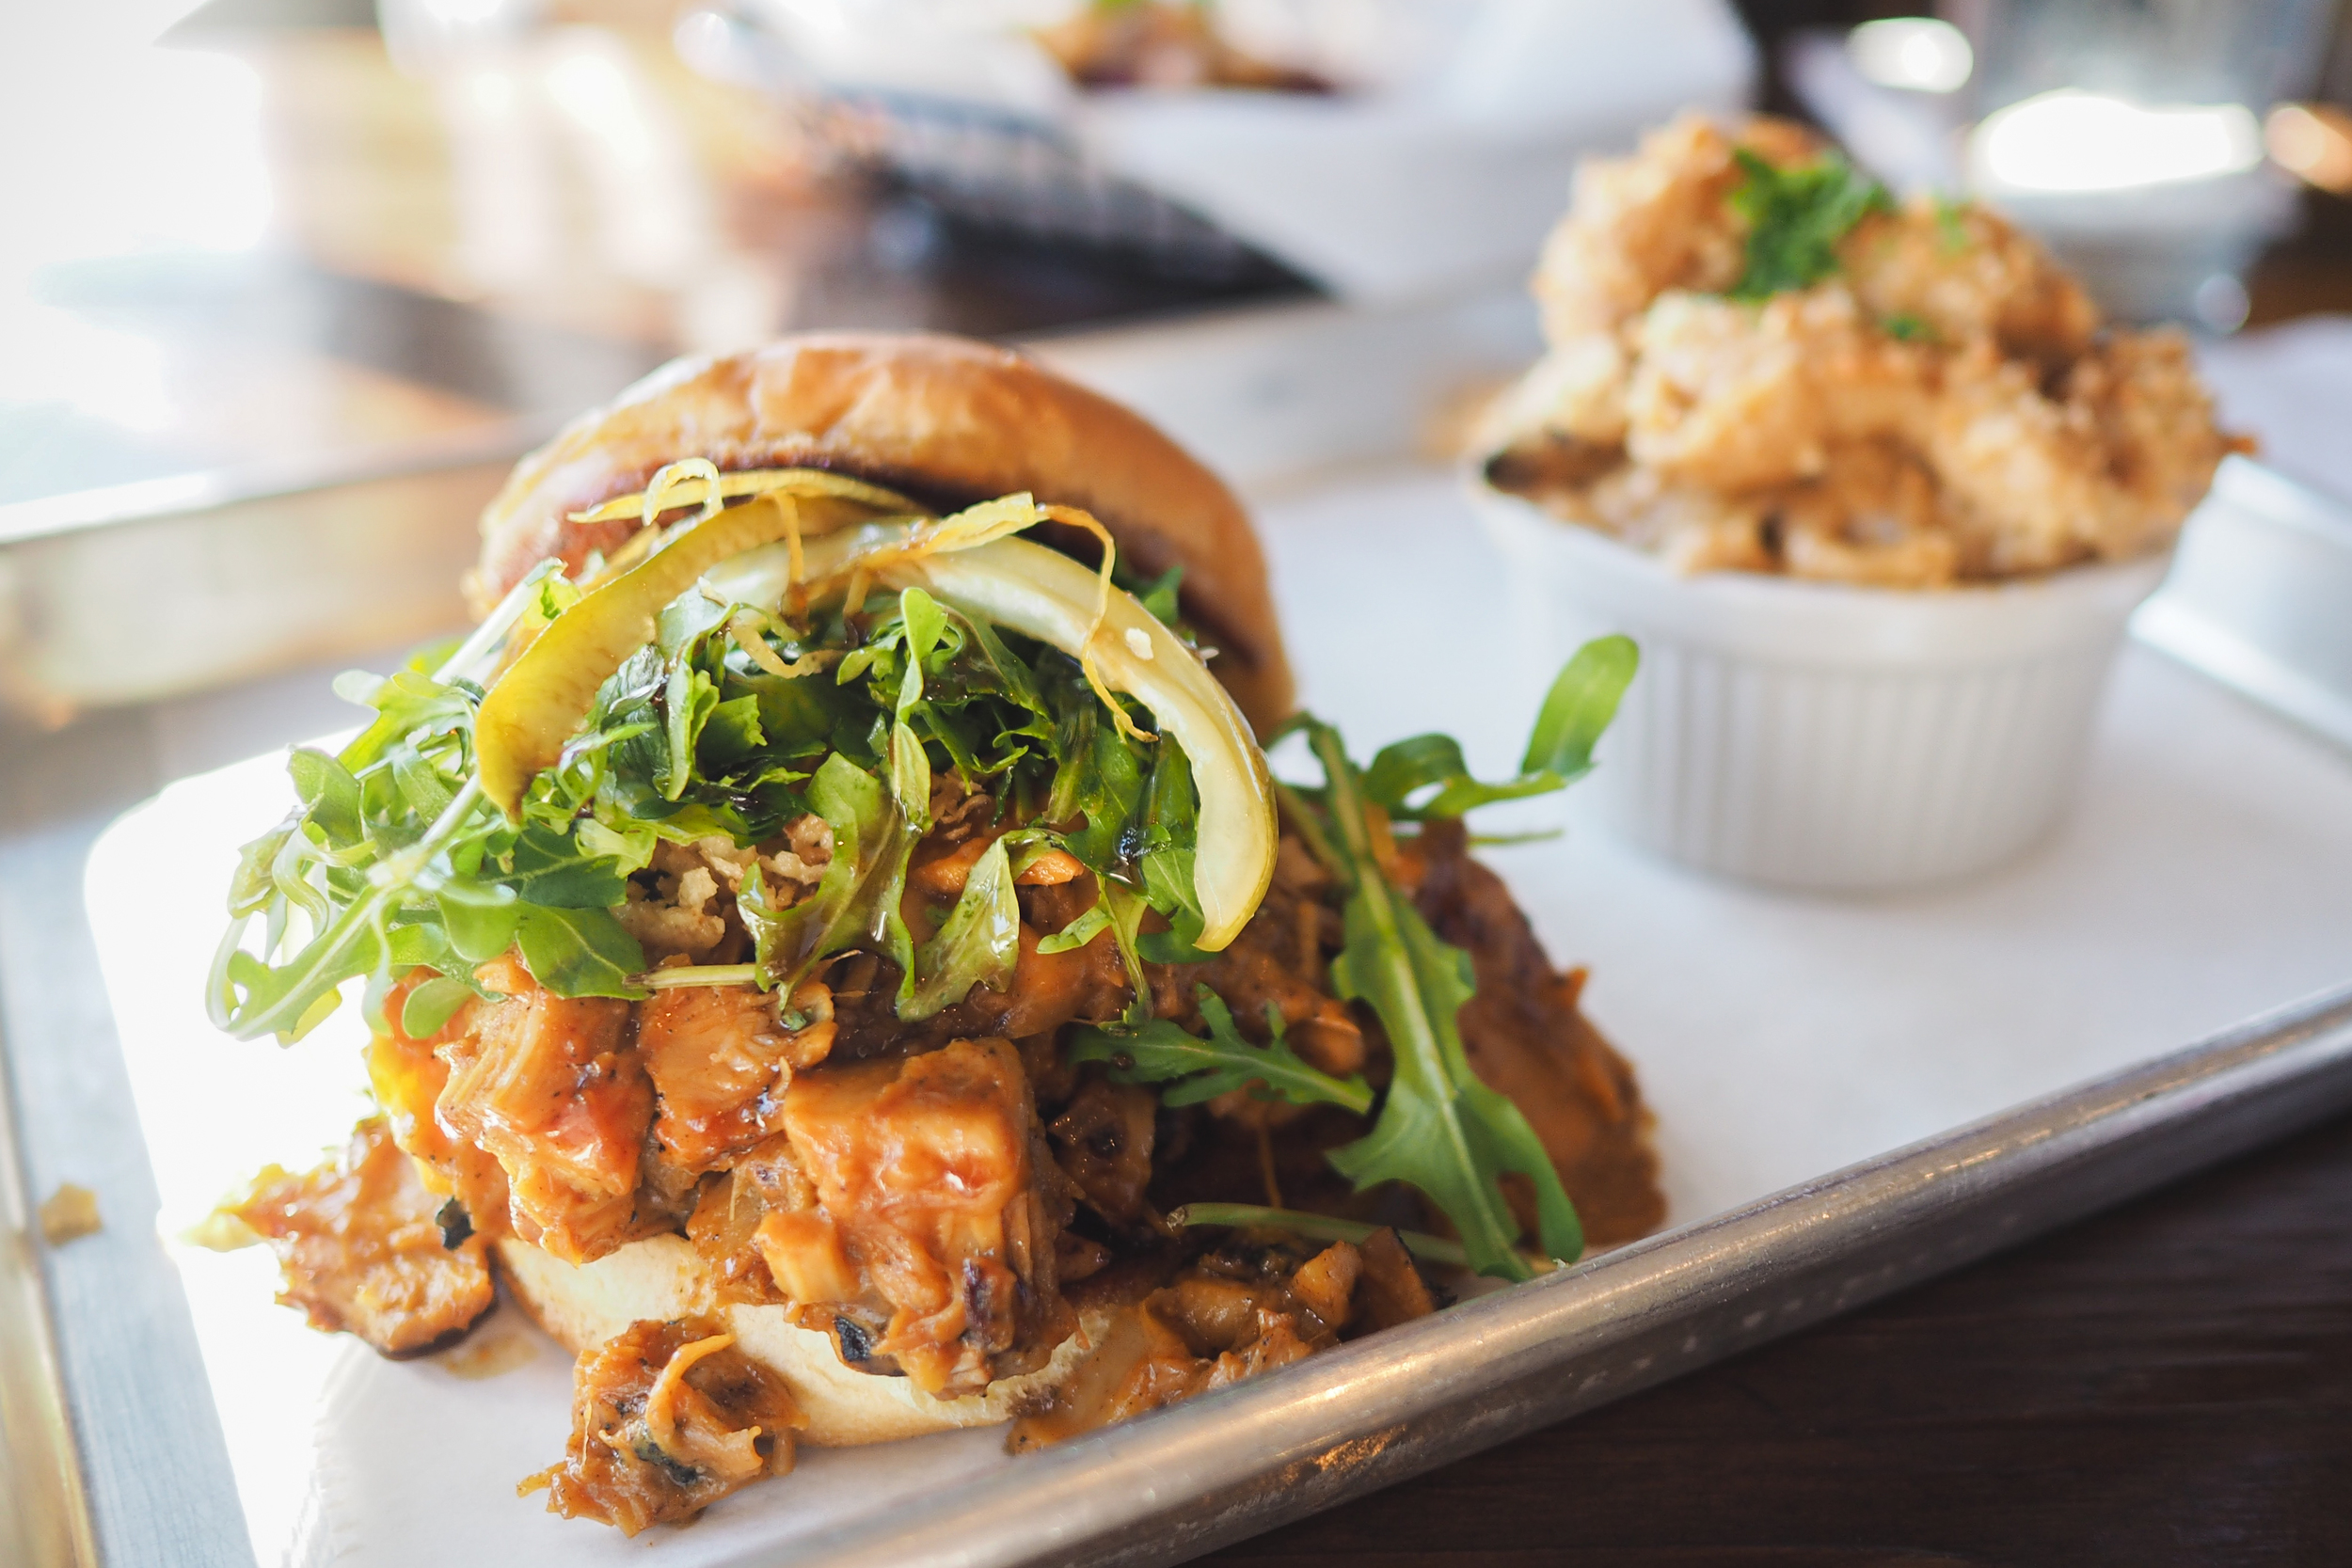 Pulled Carolina BBQ Jackfruit Sandwich: Jackfruit, fried onions, pickles, arugula, coca-cola redux, preserved lemon, and served on a bun.